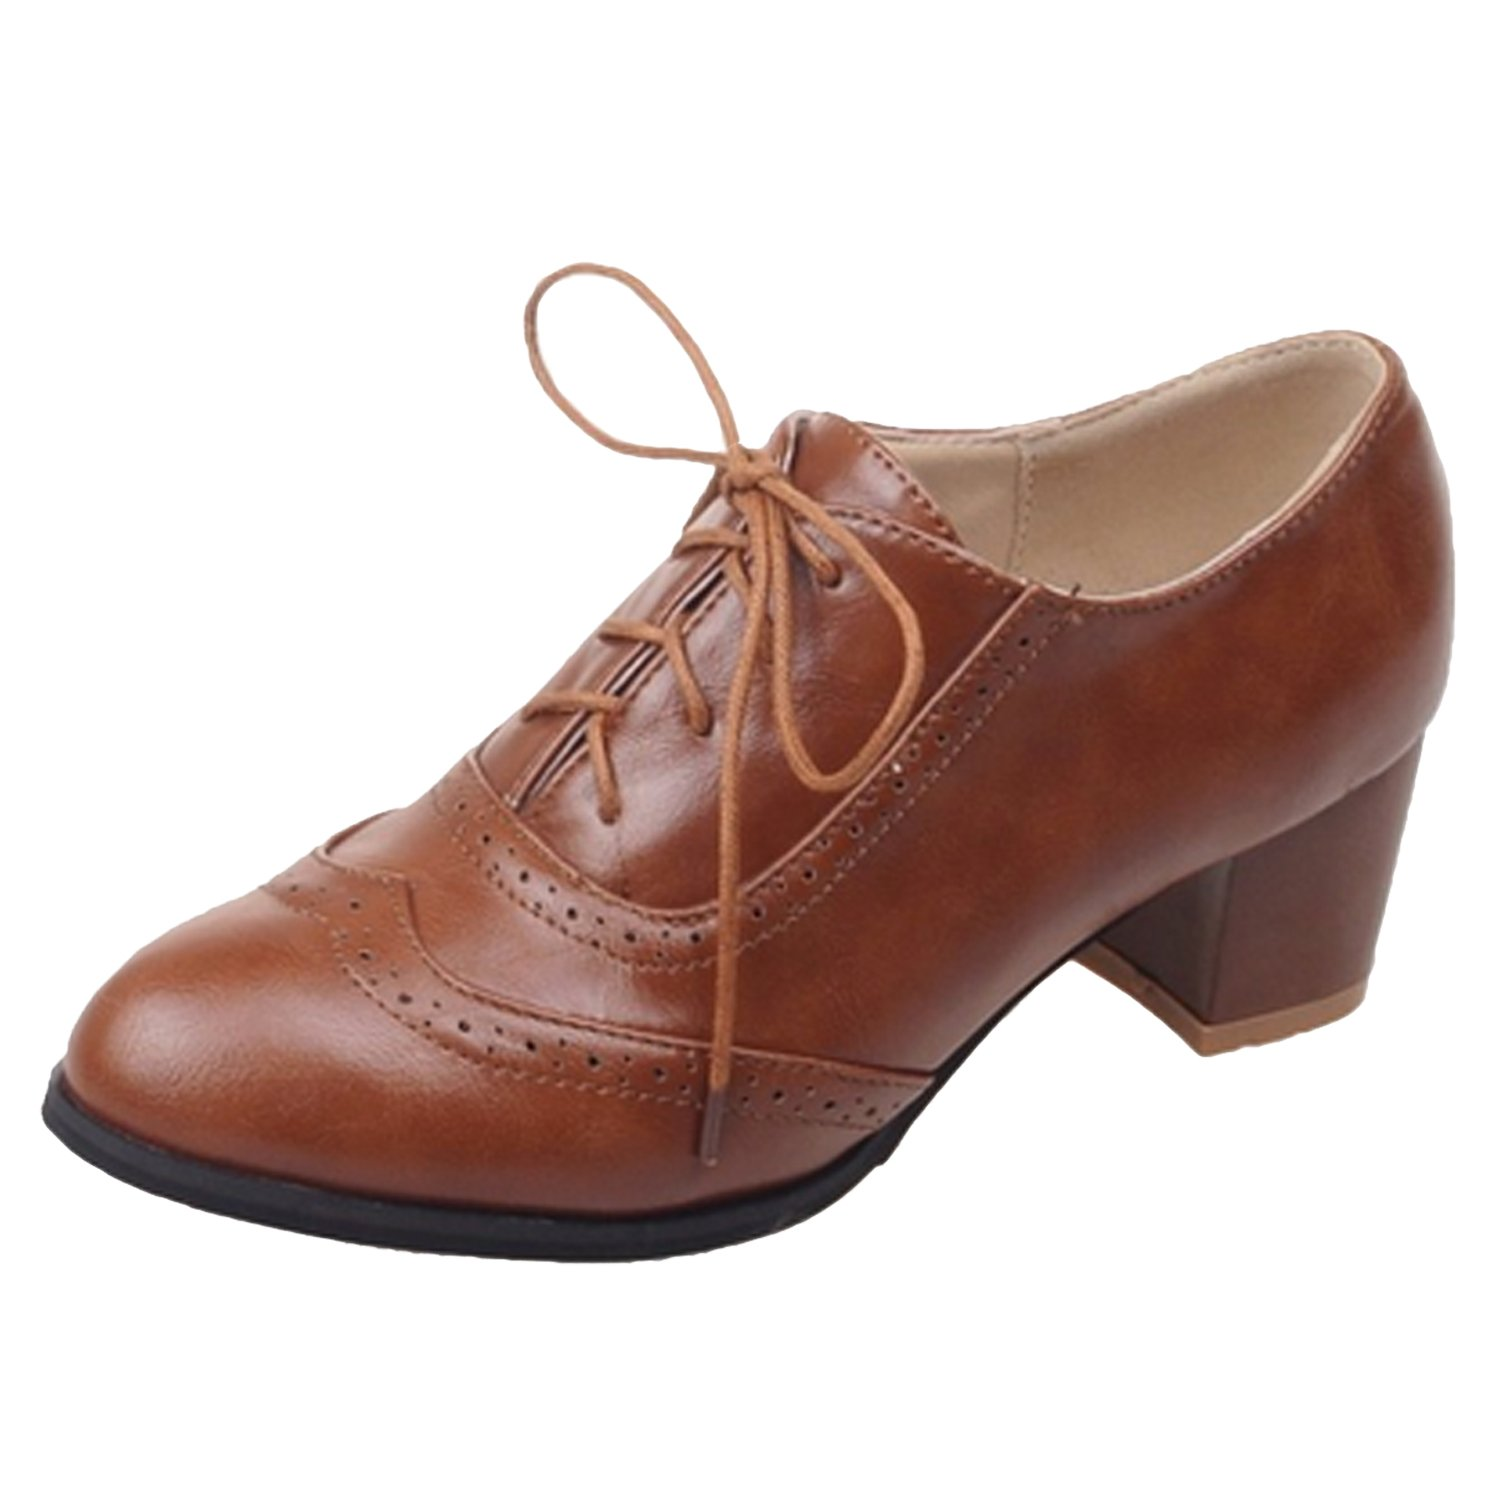 1950s Style Shoes Nonbrand Womens Heel Oxfords £22.99 AT vintagedancer.com